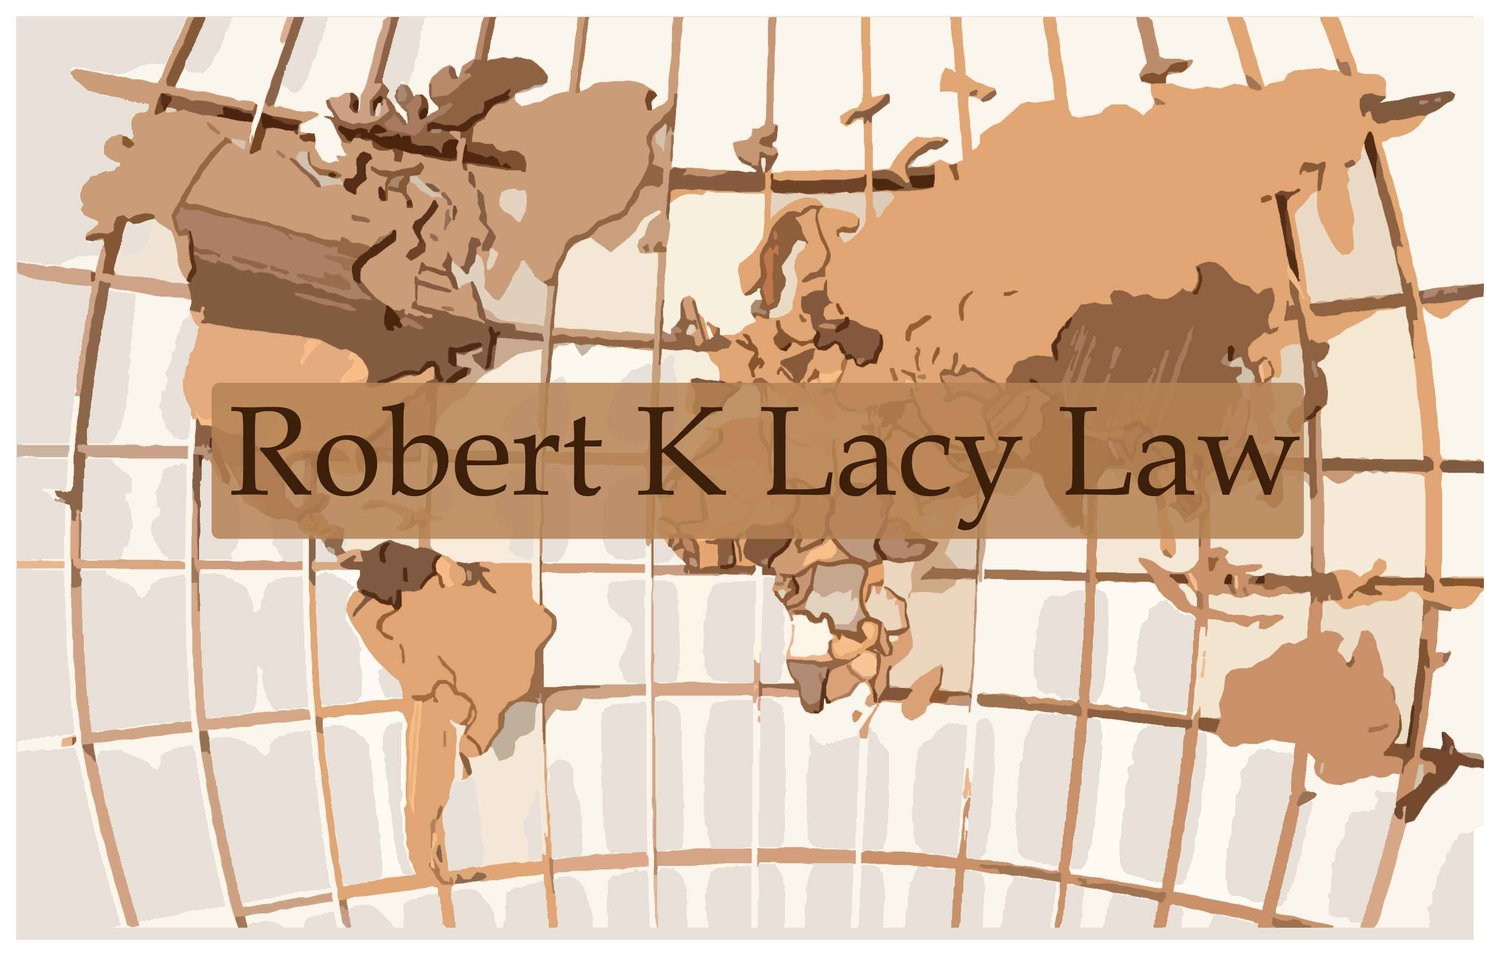 Robert K Lacy Law